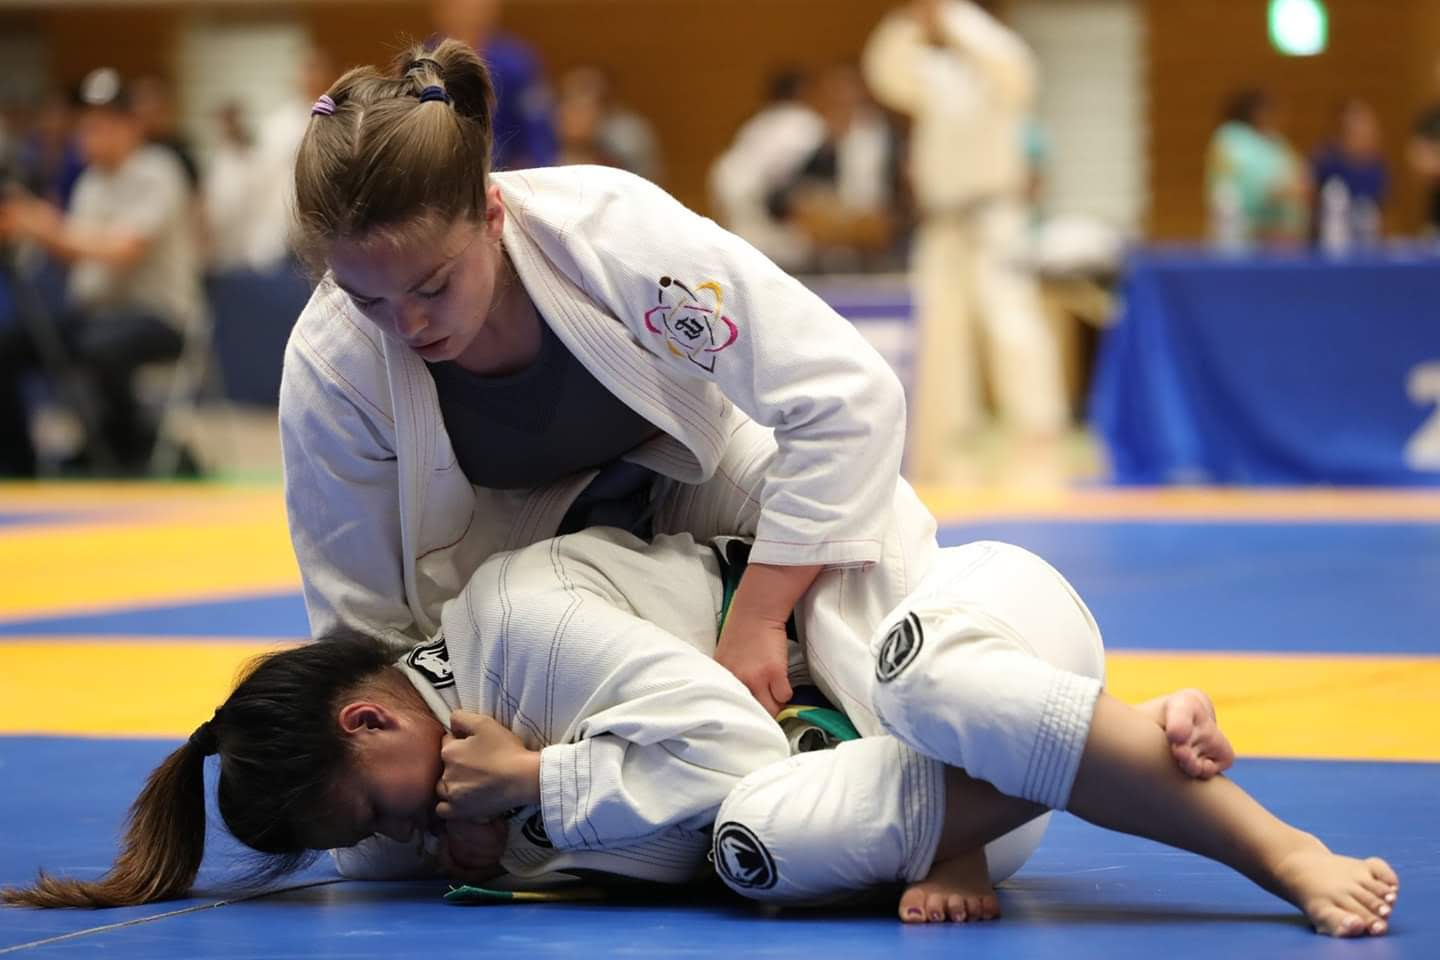 Local martial artists rank in top 10% in the world